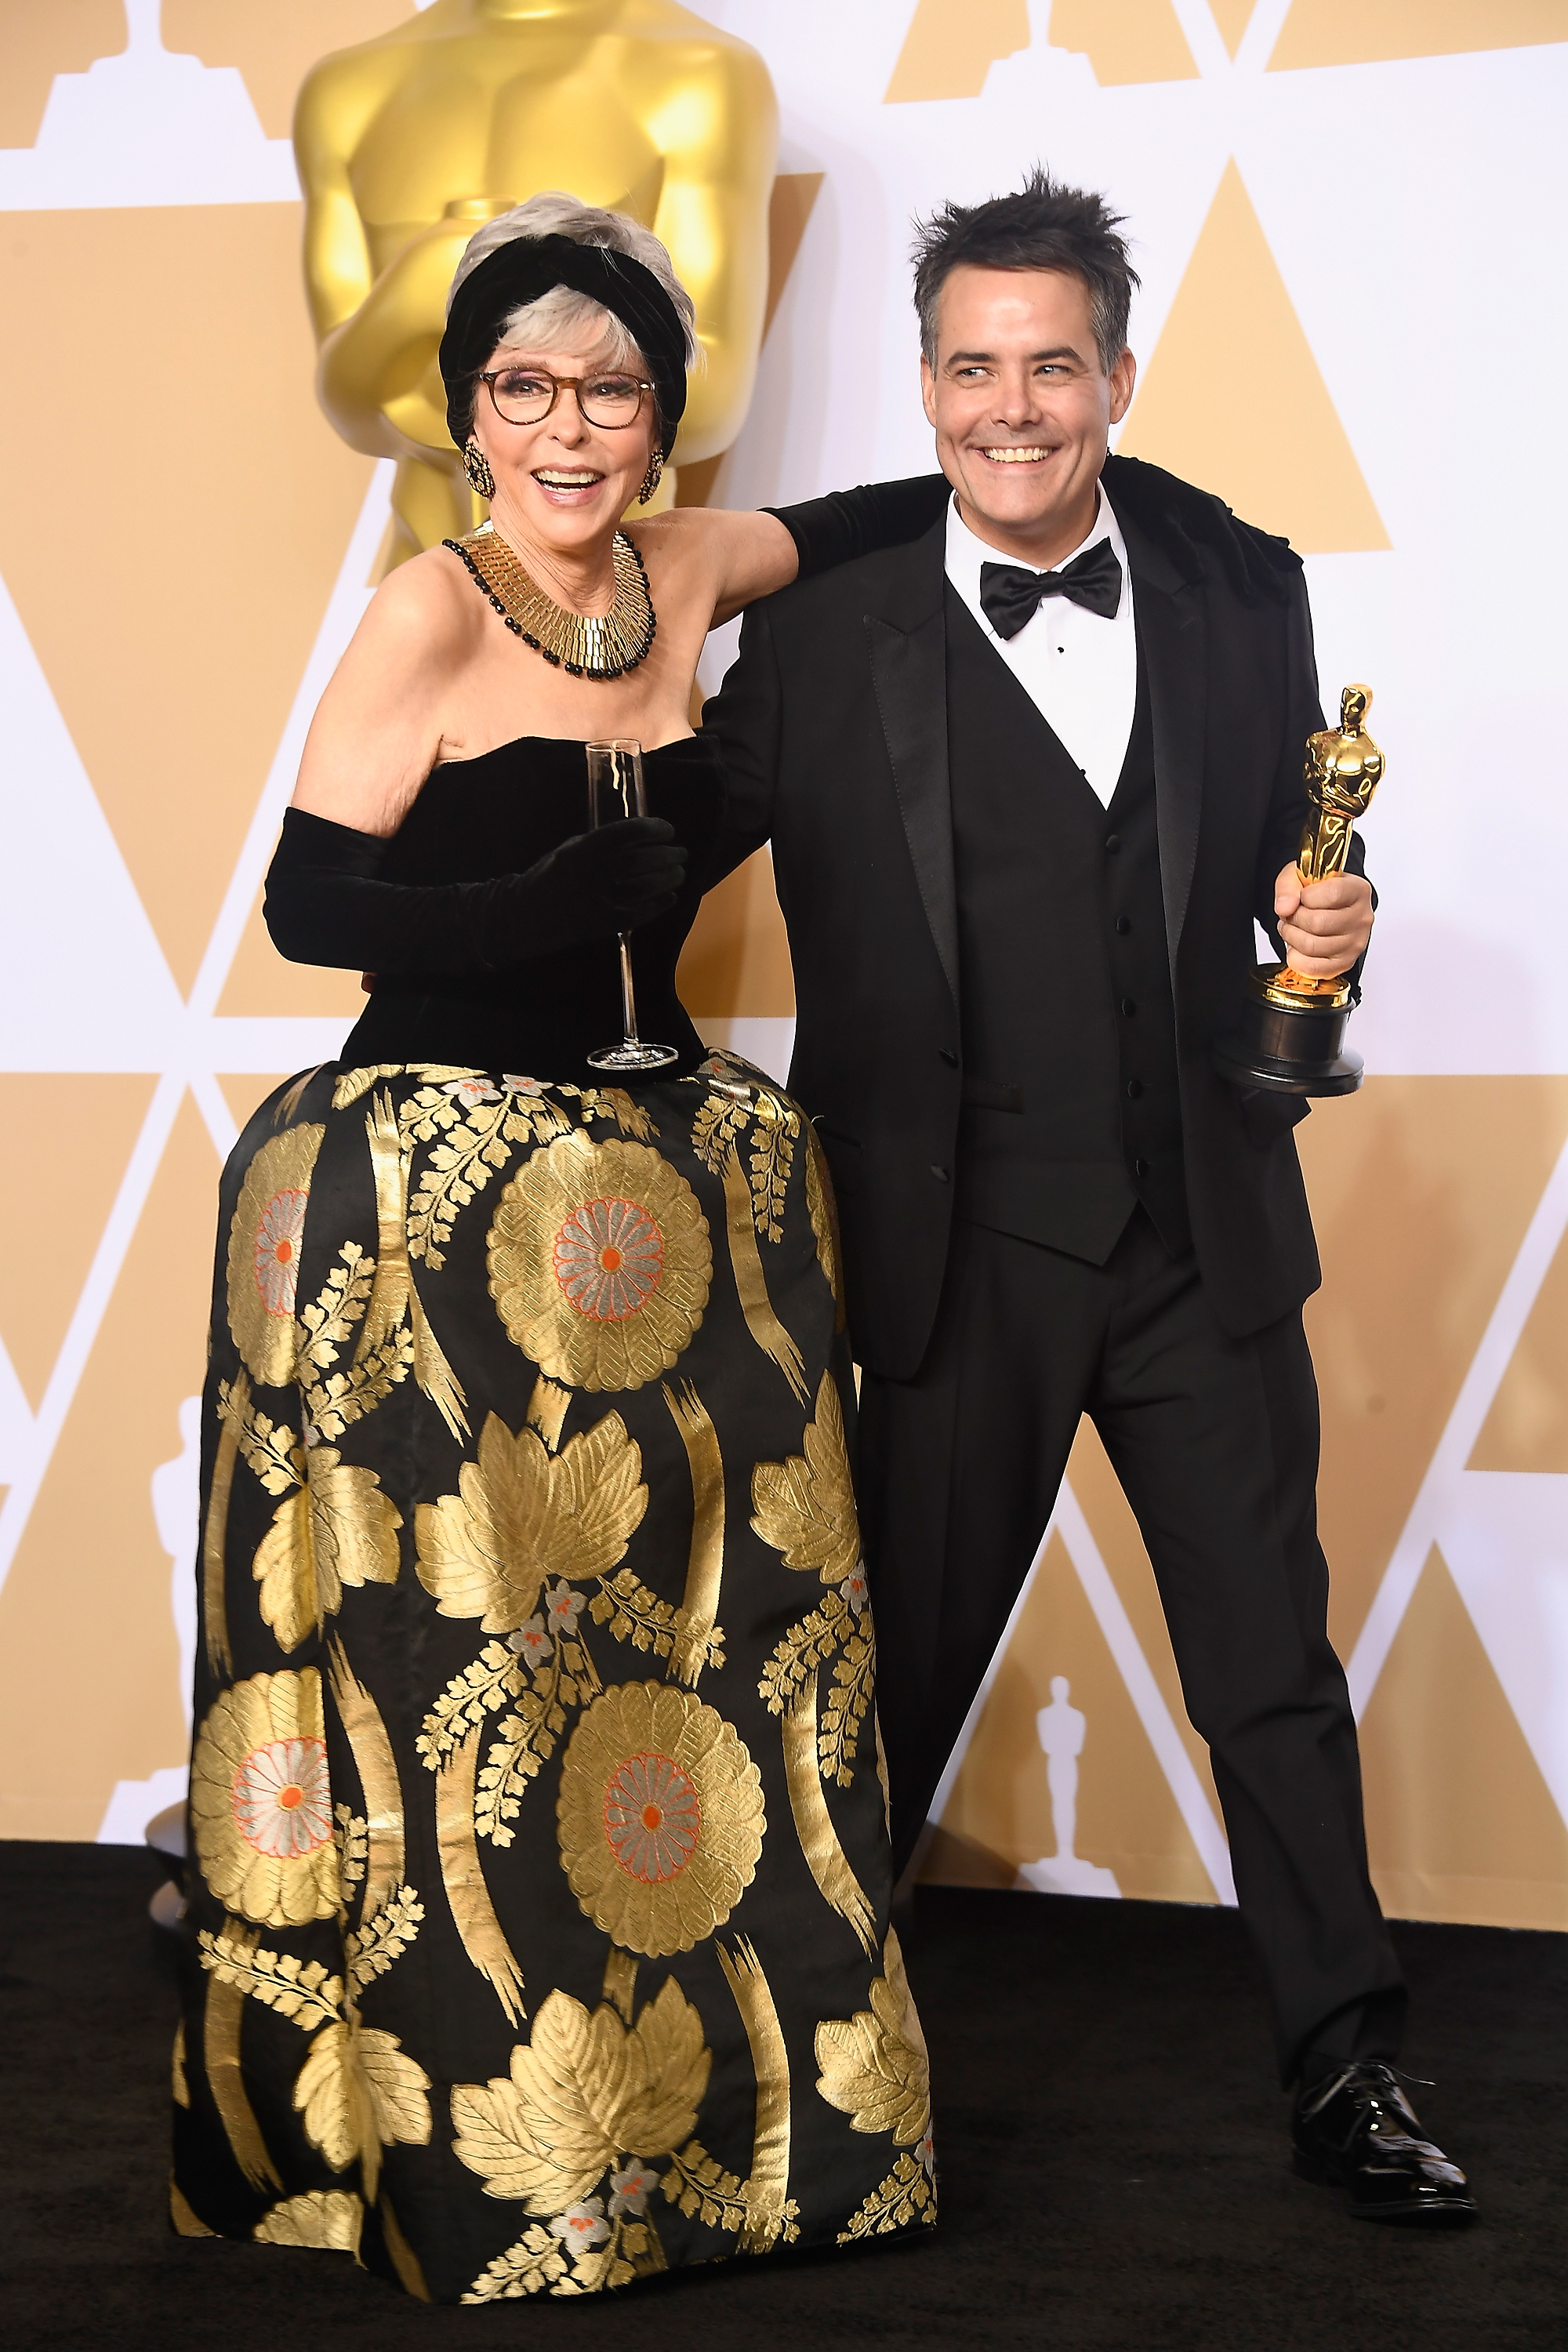 HOLLYWOOD, CA - MARCH 04:  Actor Rita Moreno (L) and director Sebastian Lelio, winner of the Best Foreign Language Film award for 'A Fantastic Woman,' pose in the press room during the 90th Annual Academy Awards at Hollywood & Highland Center on March 4, 2018 in Hollywood, California.  (Photo by Frazer Harrison/Getty Images)